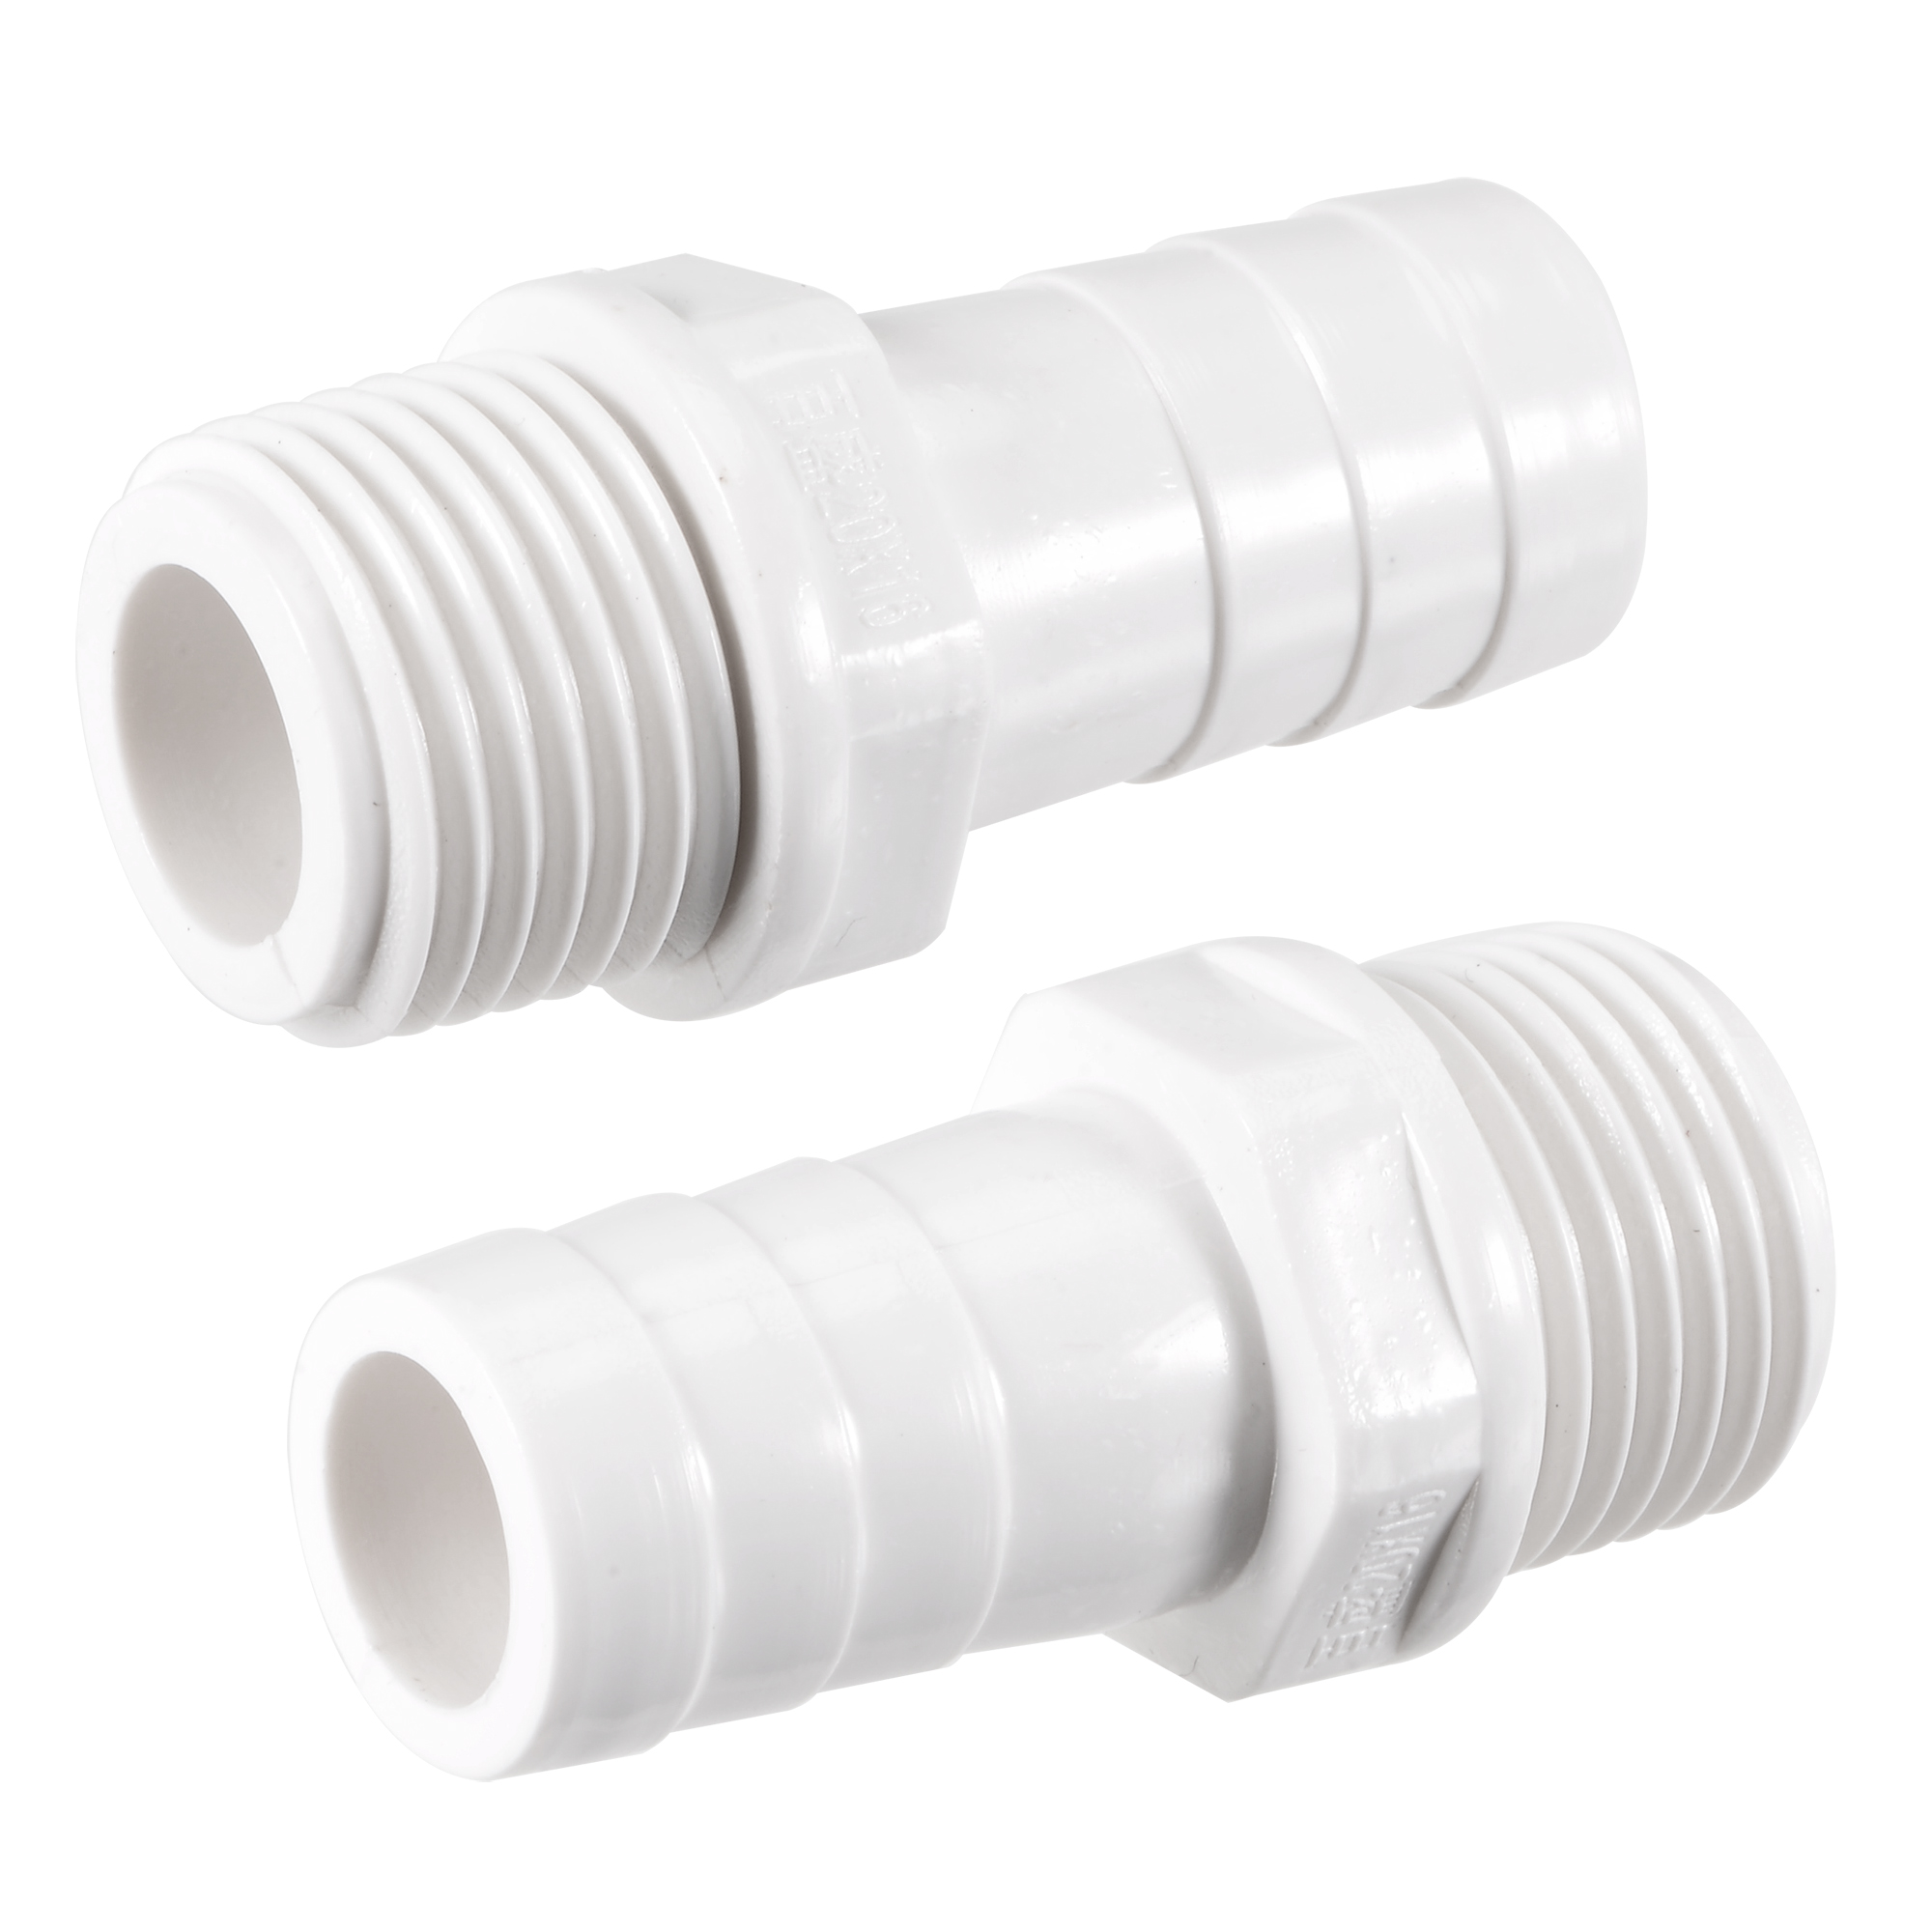 PVC Tube Fitting Adapter 16mm Barbed x G1/2 Male White for Aquariums 2Pcs